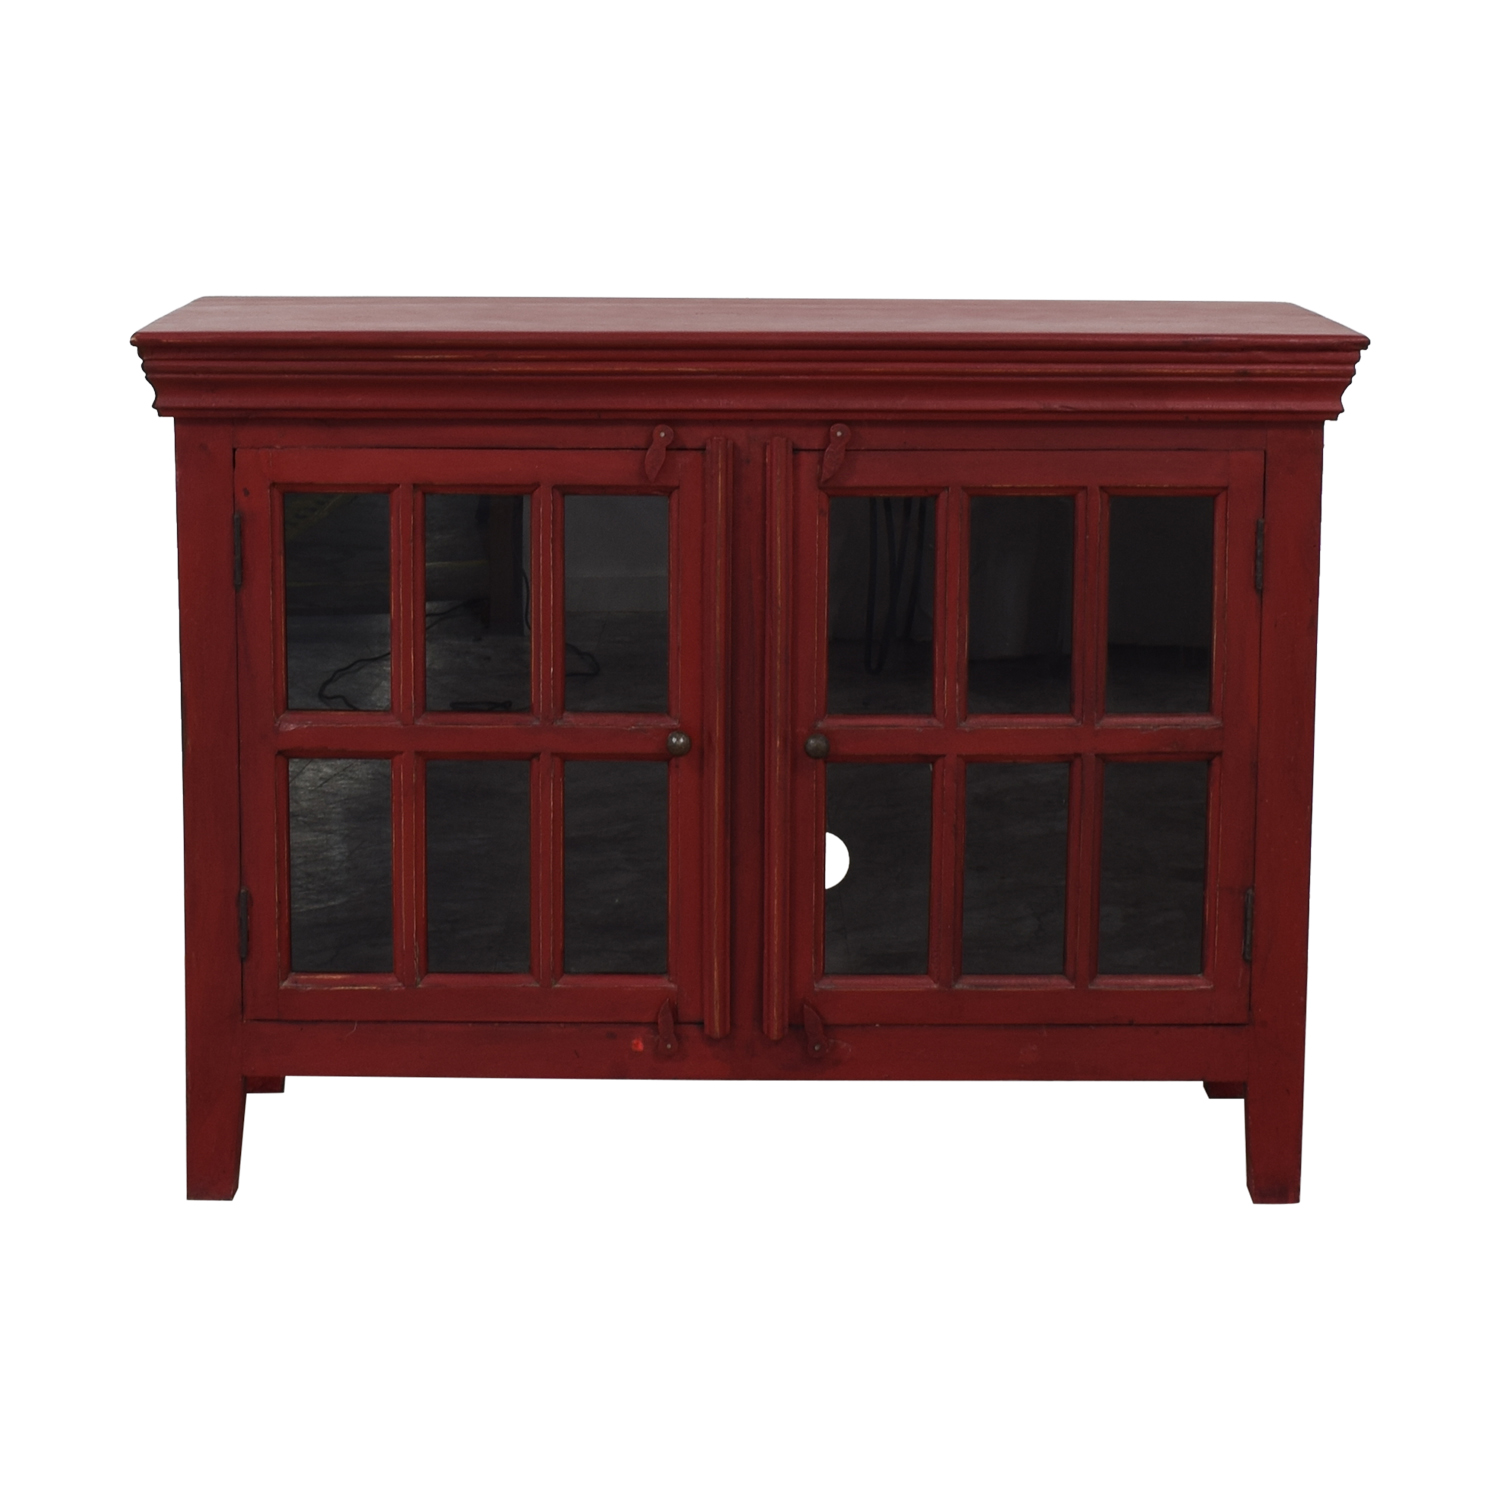 Crate & Barrel Rojo Red Media Storage Cabinet / Media Units